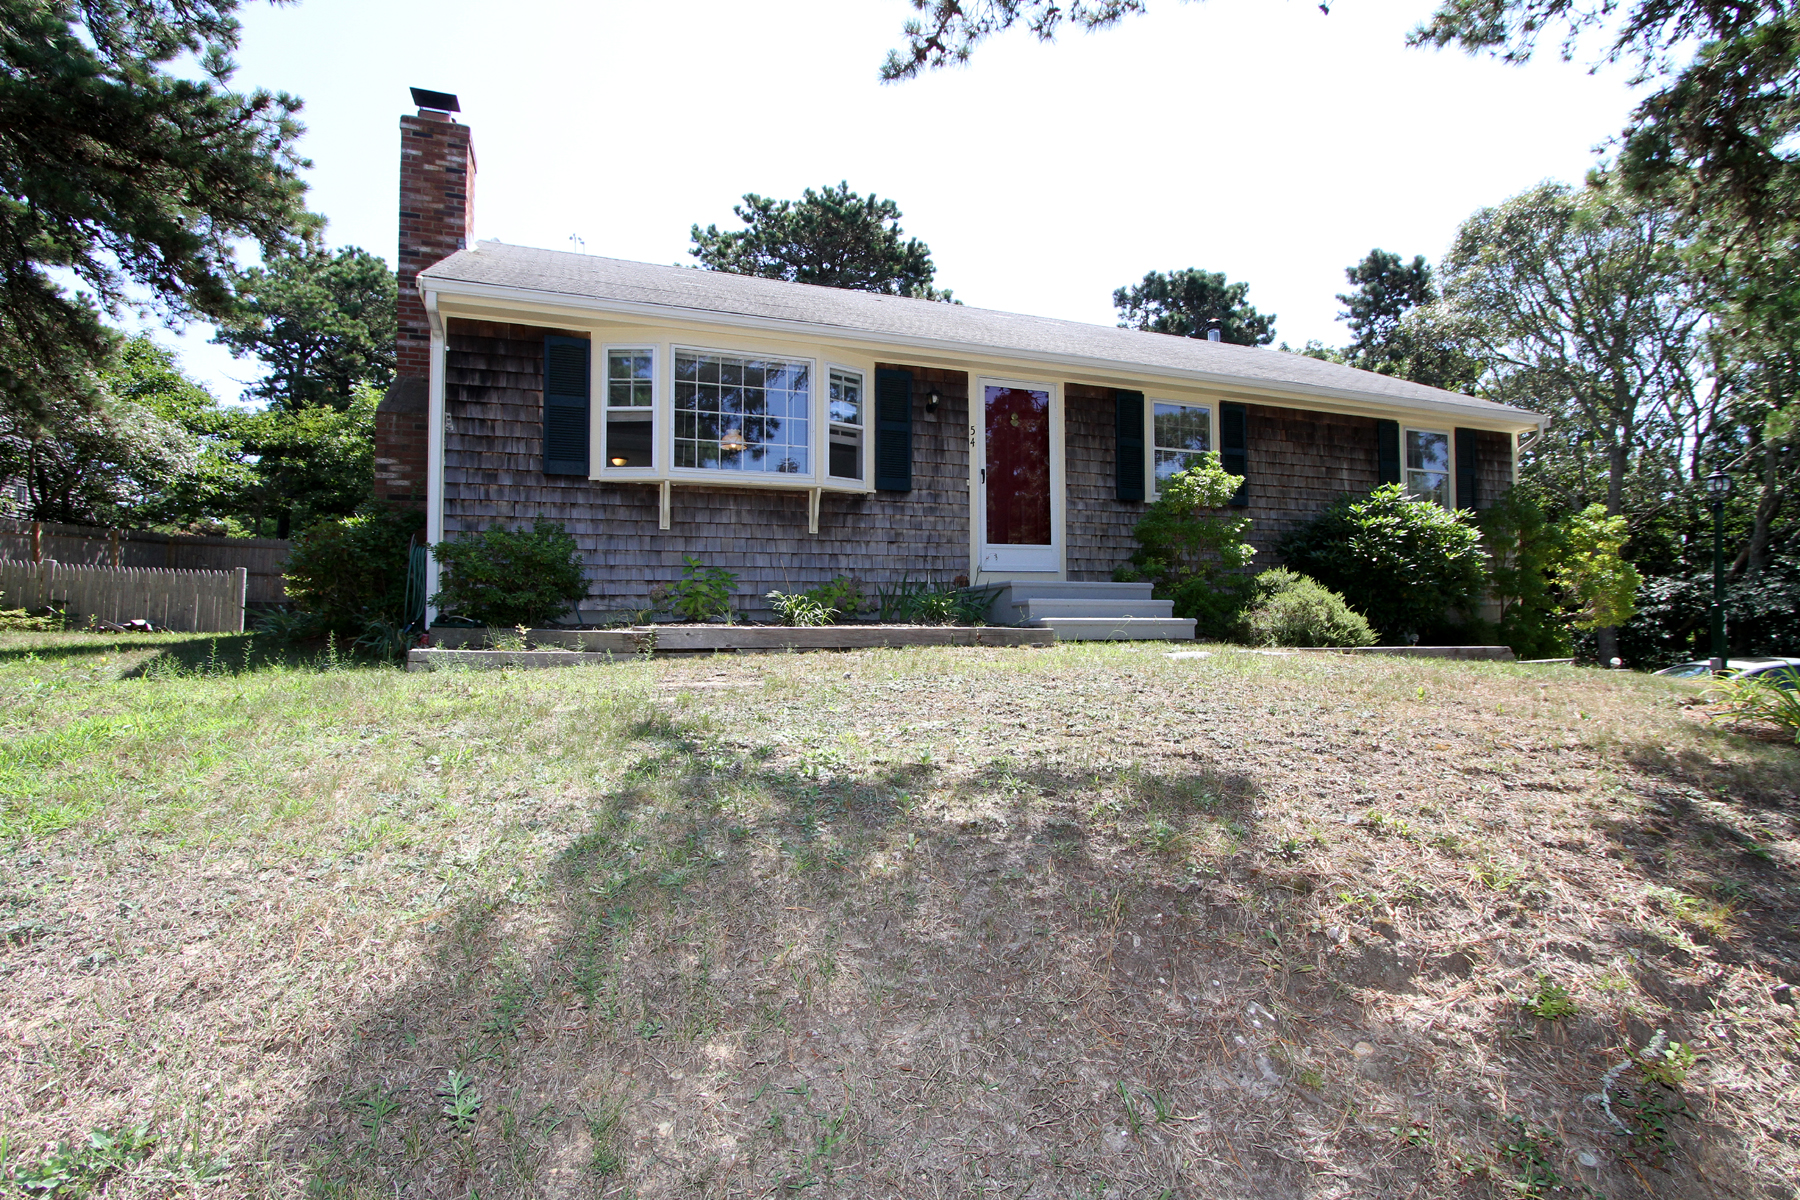 Single Family Home for Sale at MOVE RIGHT IN 54 Holly Drive Chatham, Massachusetts 02659 United States